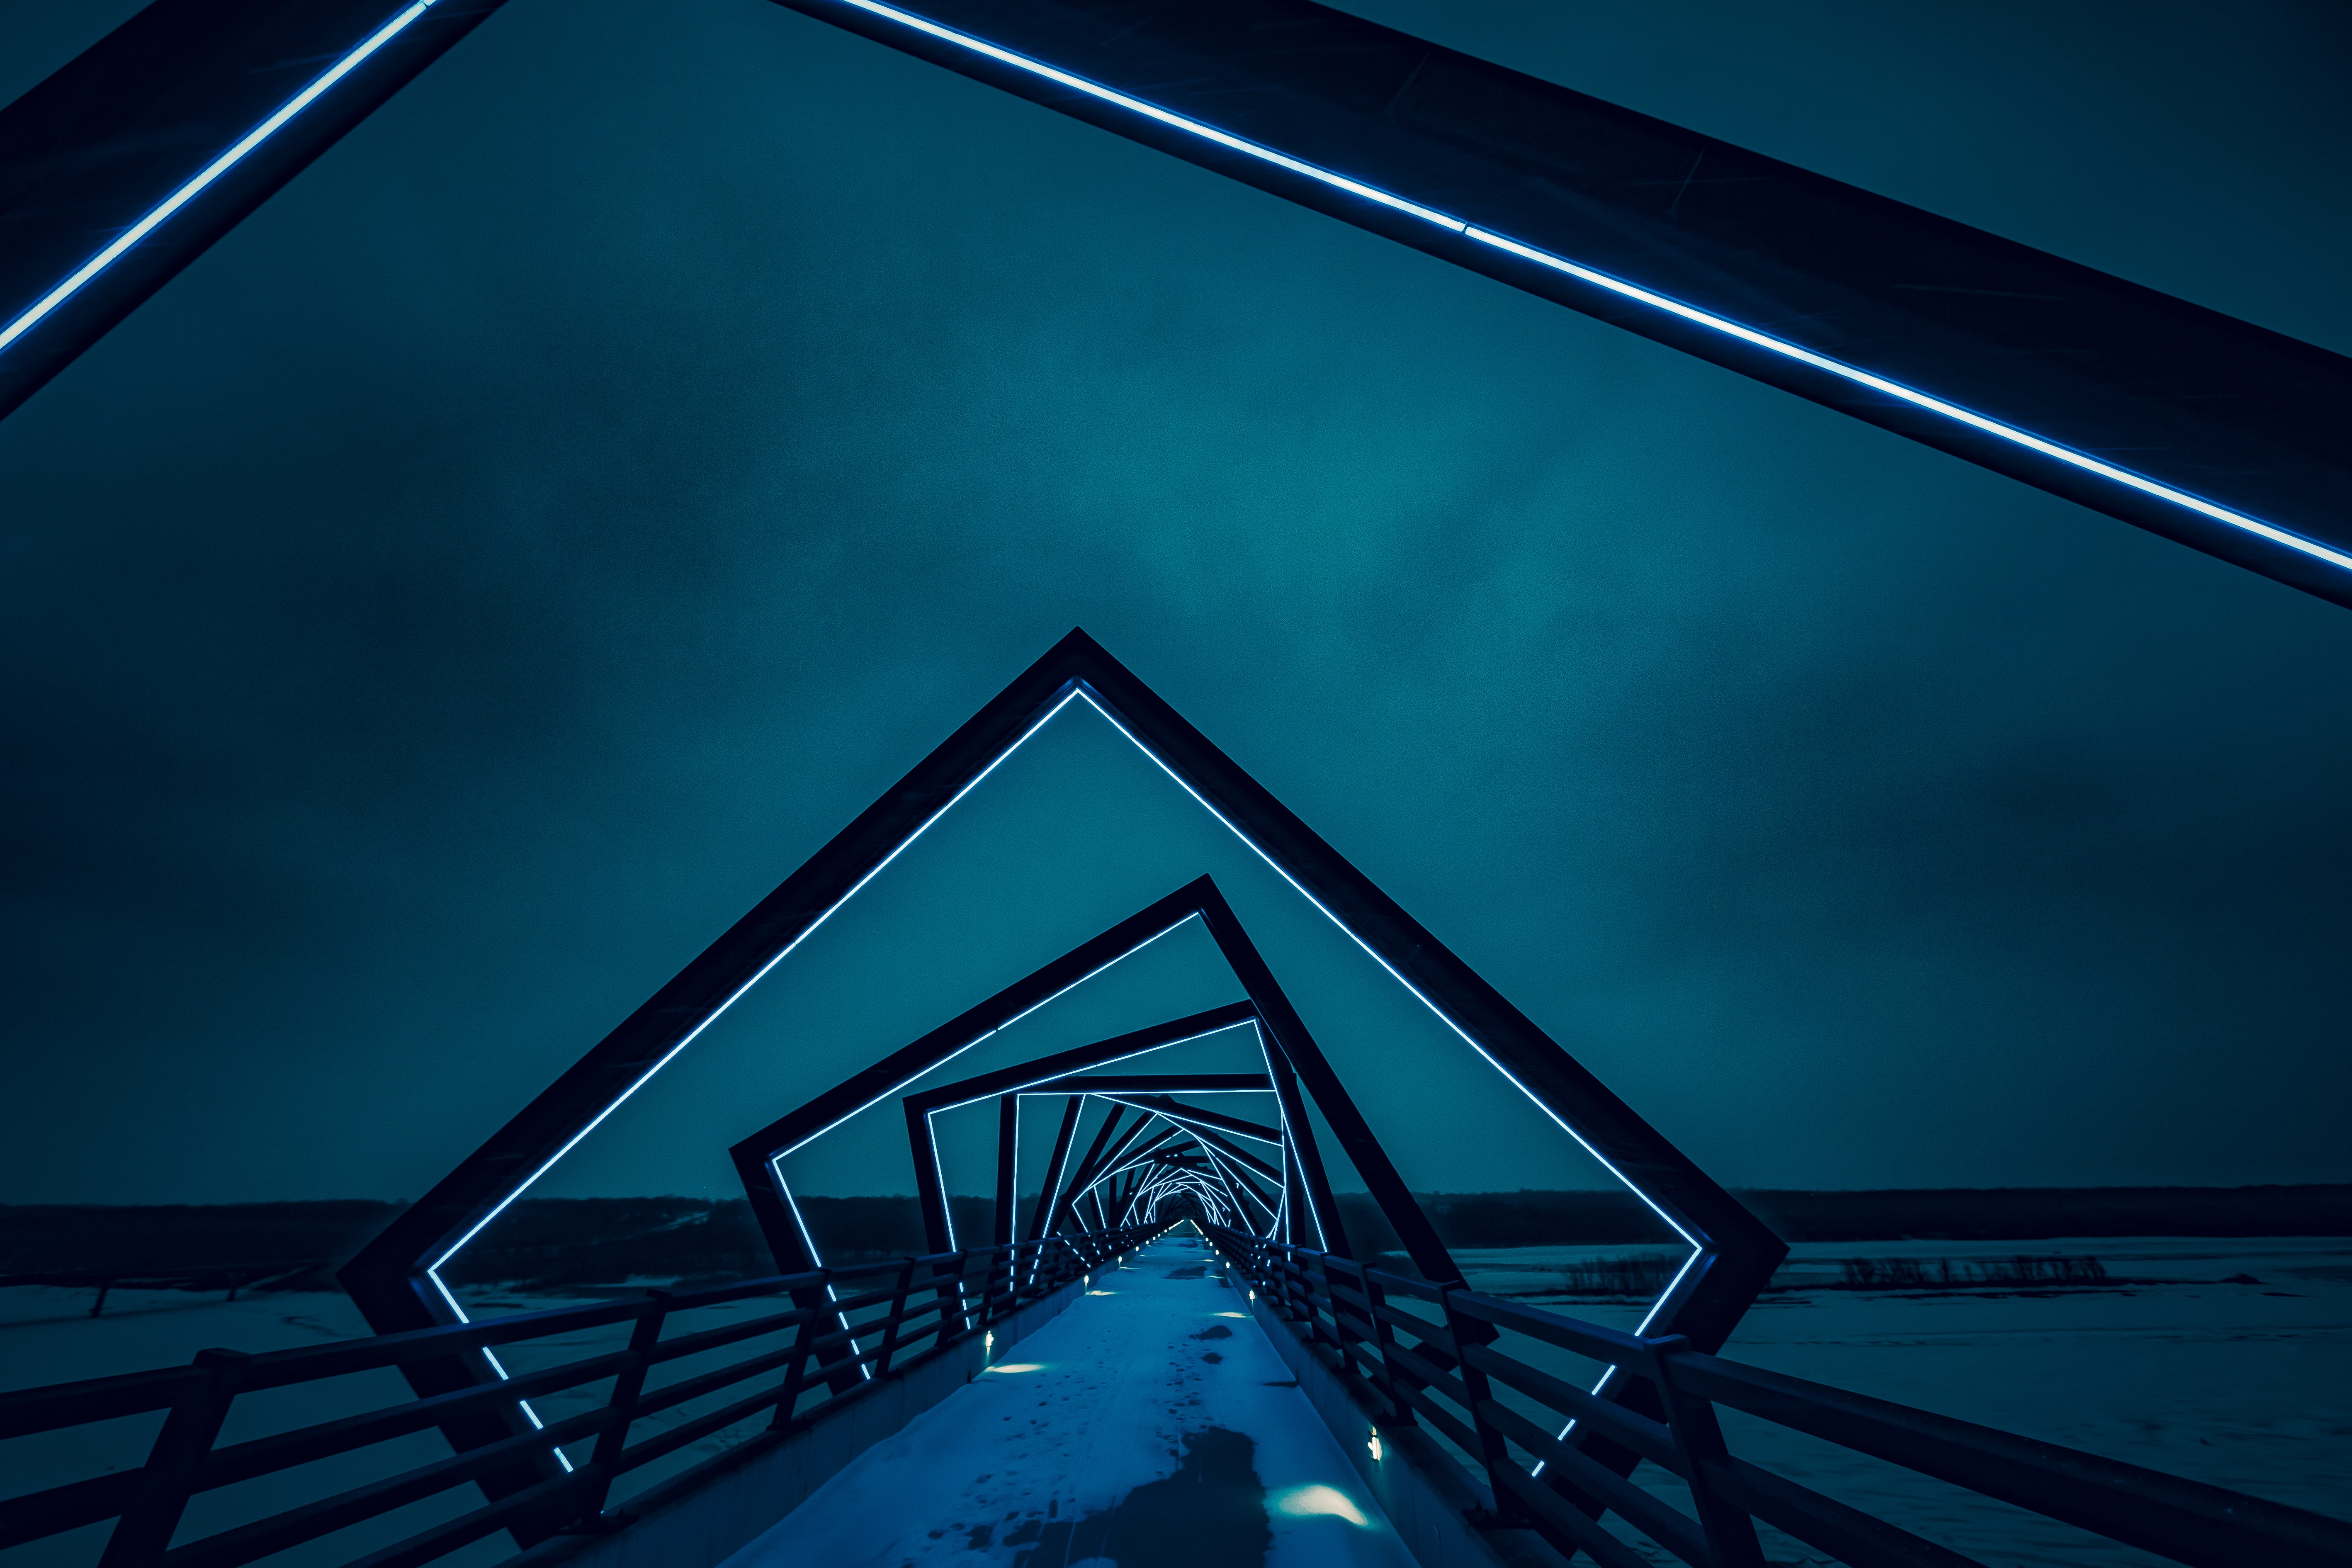 Modern geometric neon bridge architecture at night on walkway, High Trestle Trail Bridge